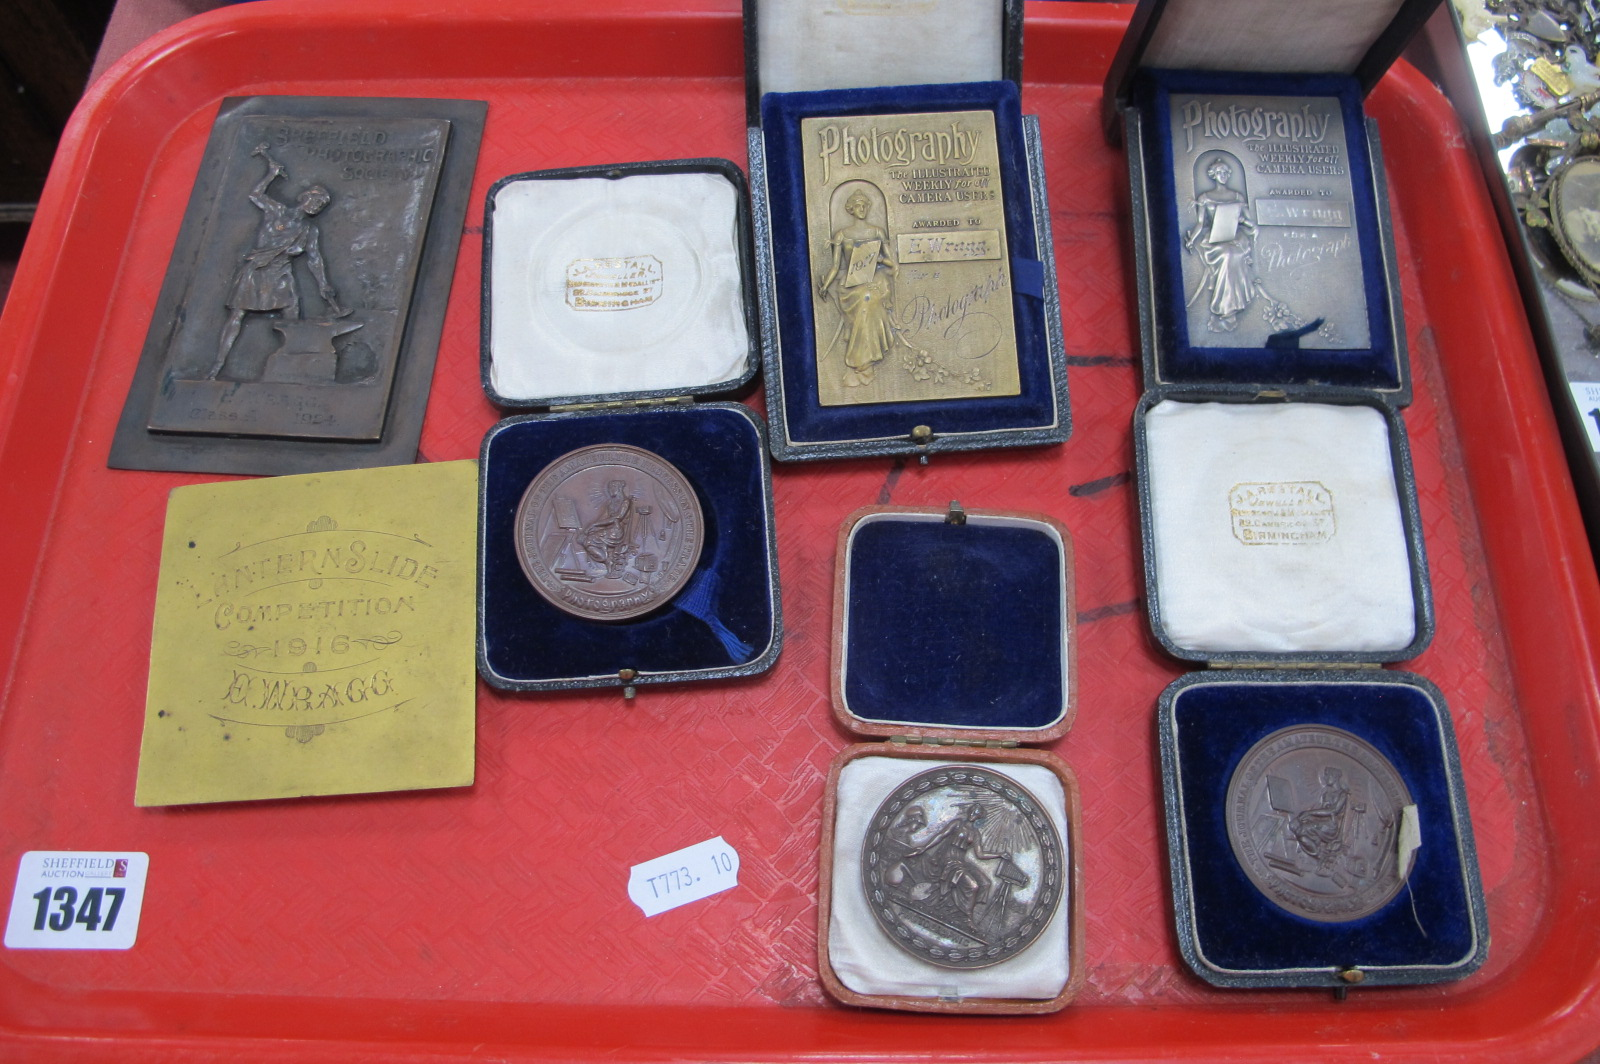 Silver Photography Plaque Awards to E.Wragg, others in brass and copper, Sunday School examples,